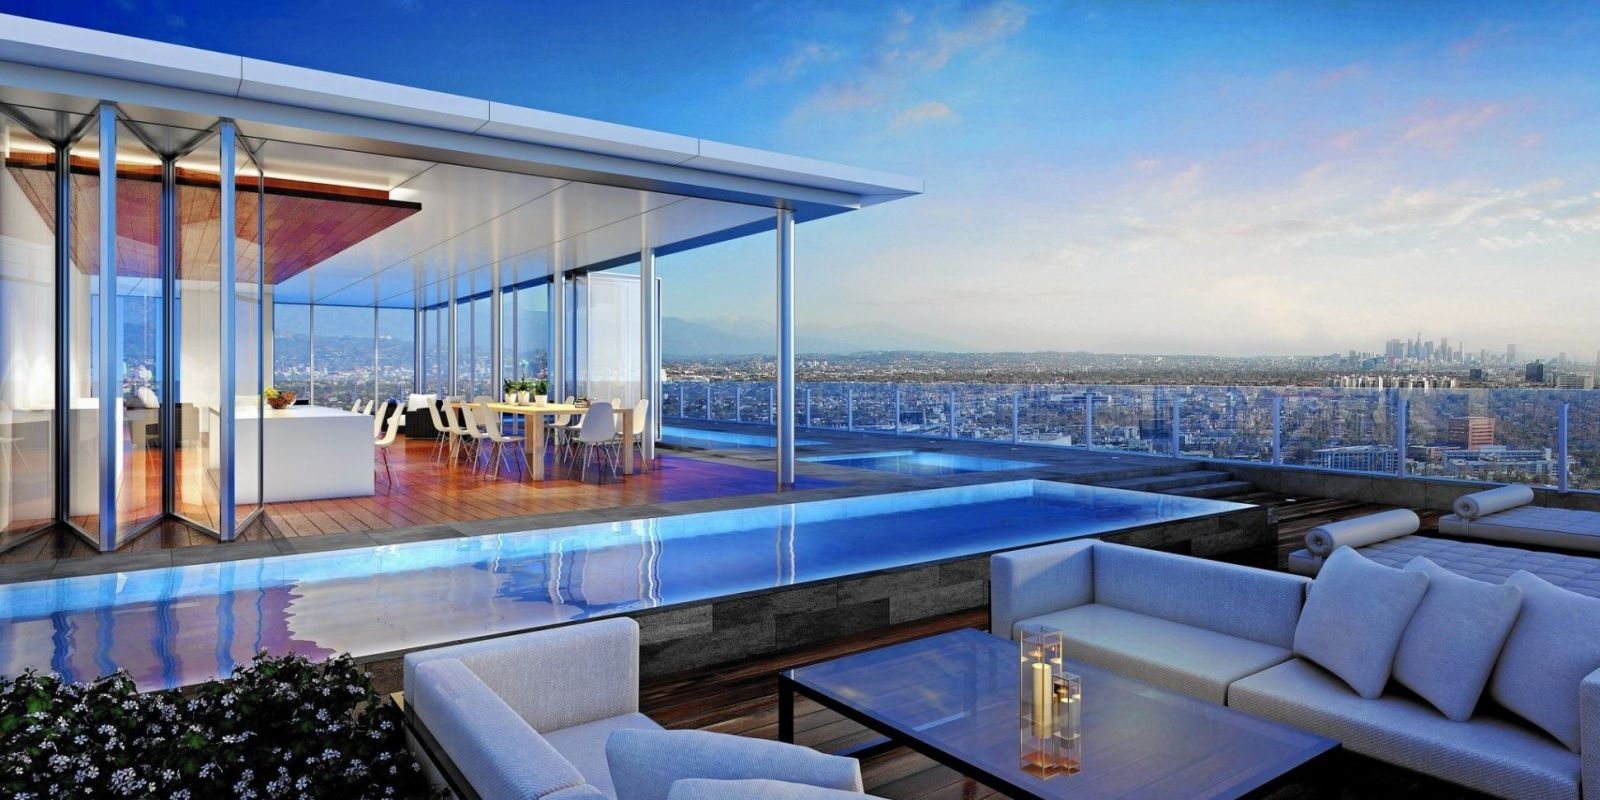 39 paparazzi proof 39 penthouse listed for 50 million for Penthouses in los angeles